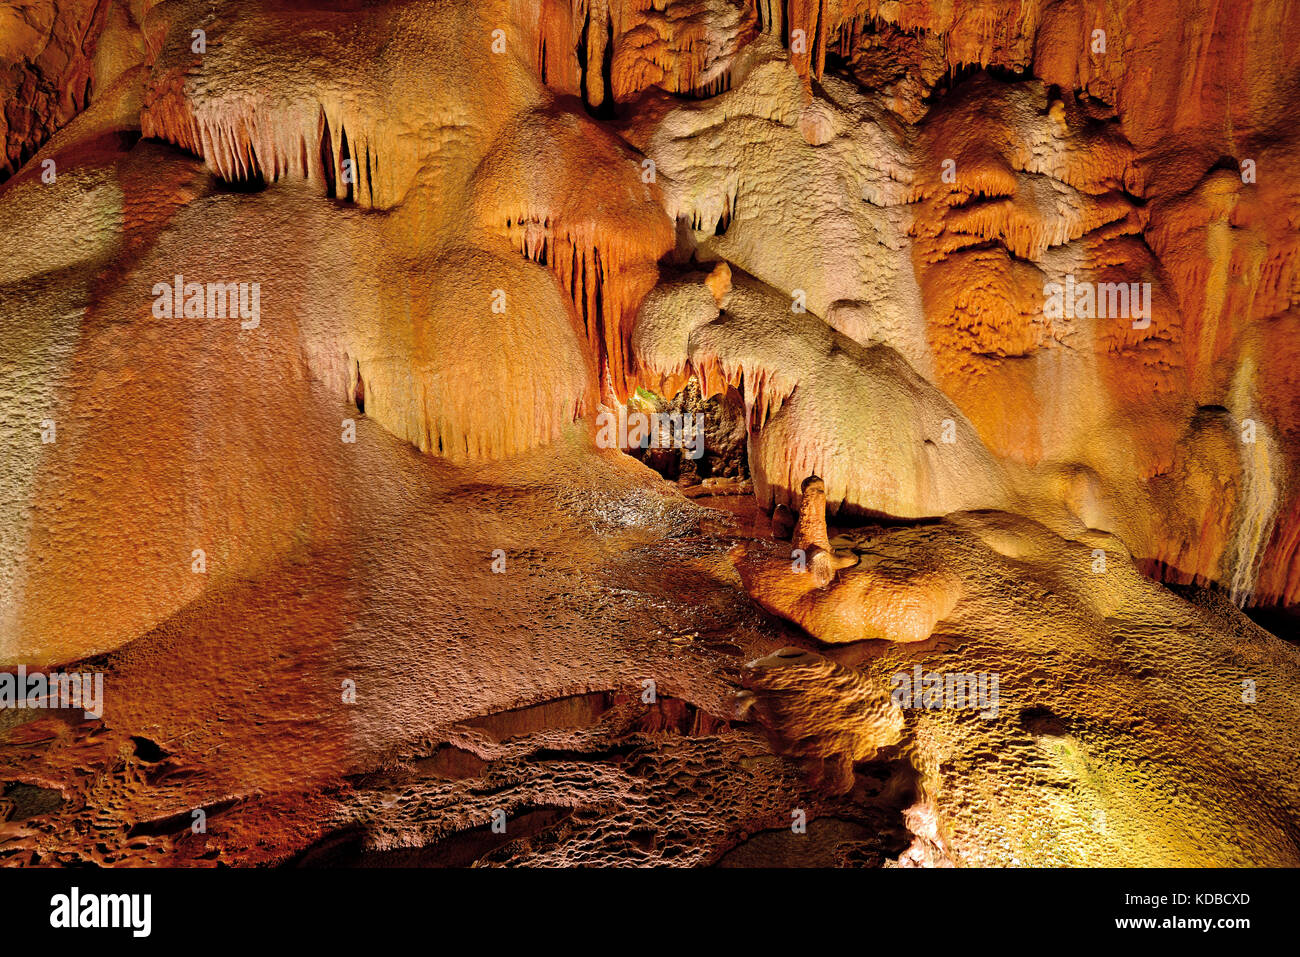 Limestone formations in stalactite cave - Stock Image